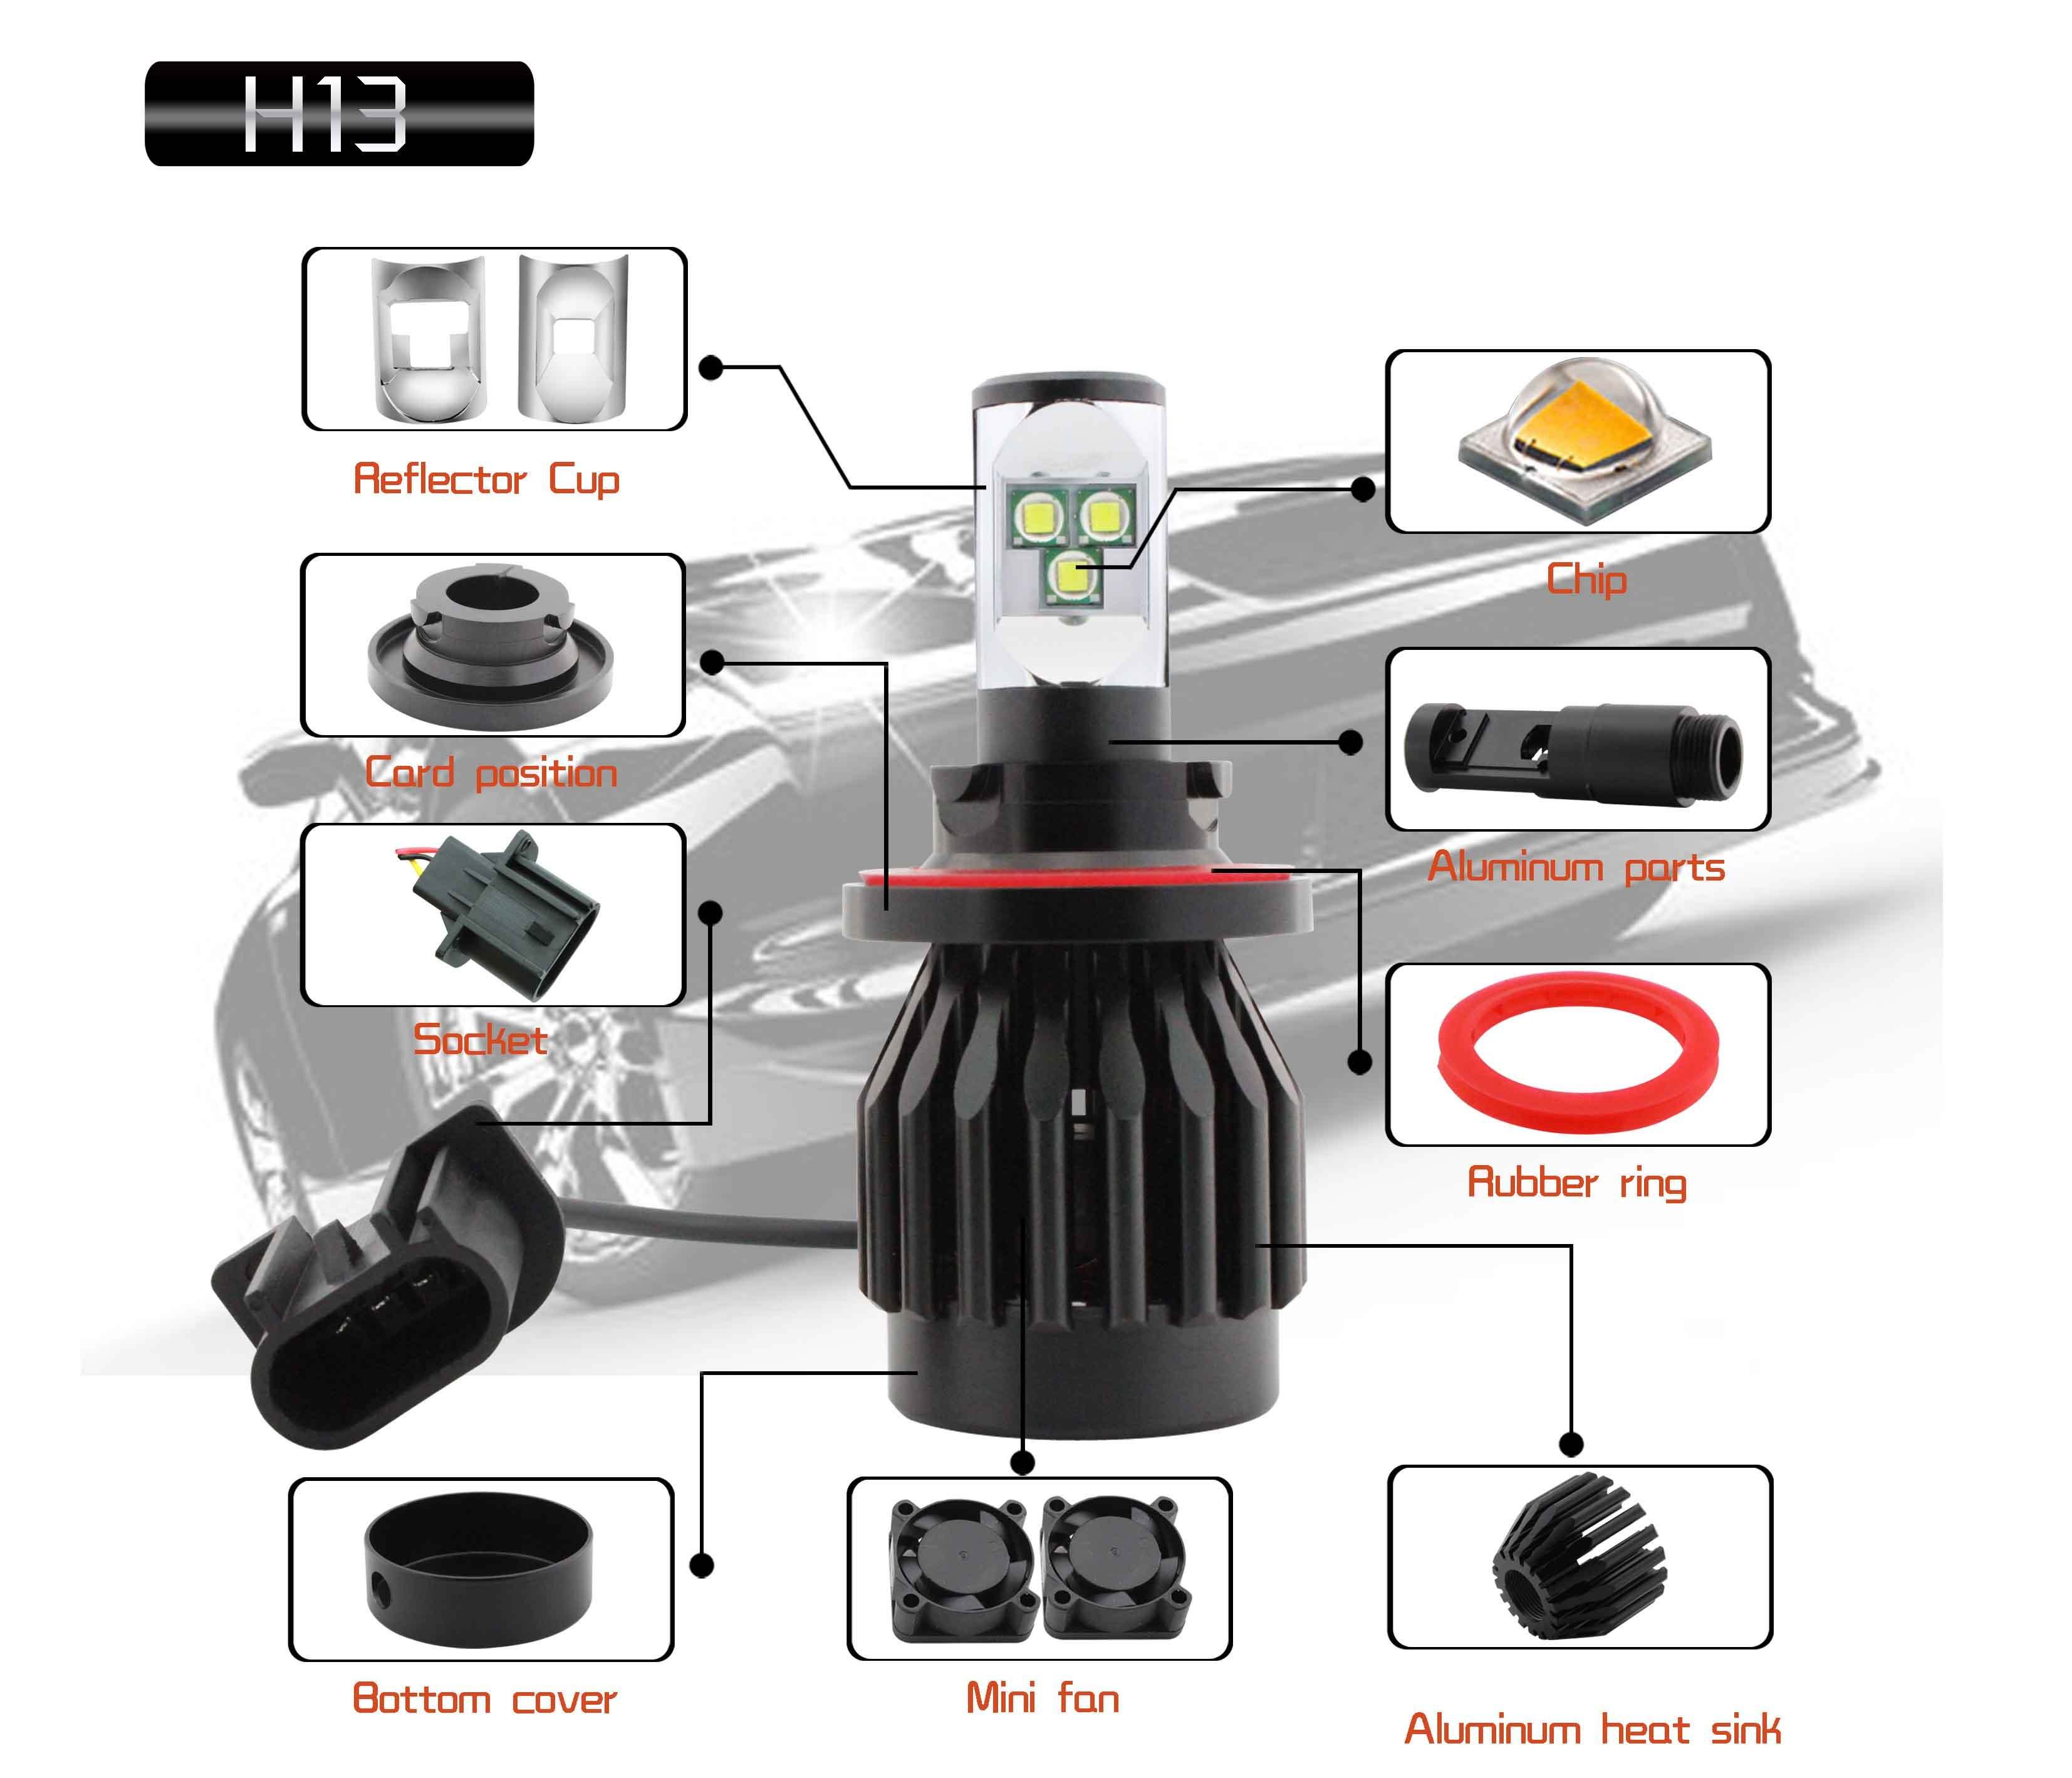 C Ree Chip 4500lm LED Head Light for Universal Cars